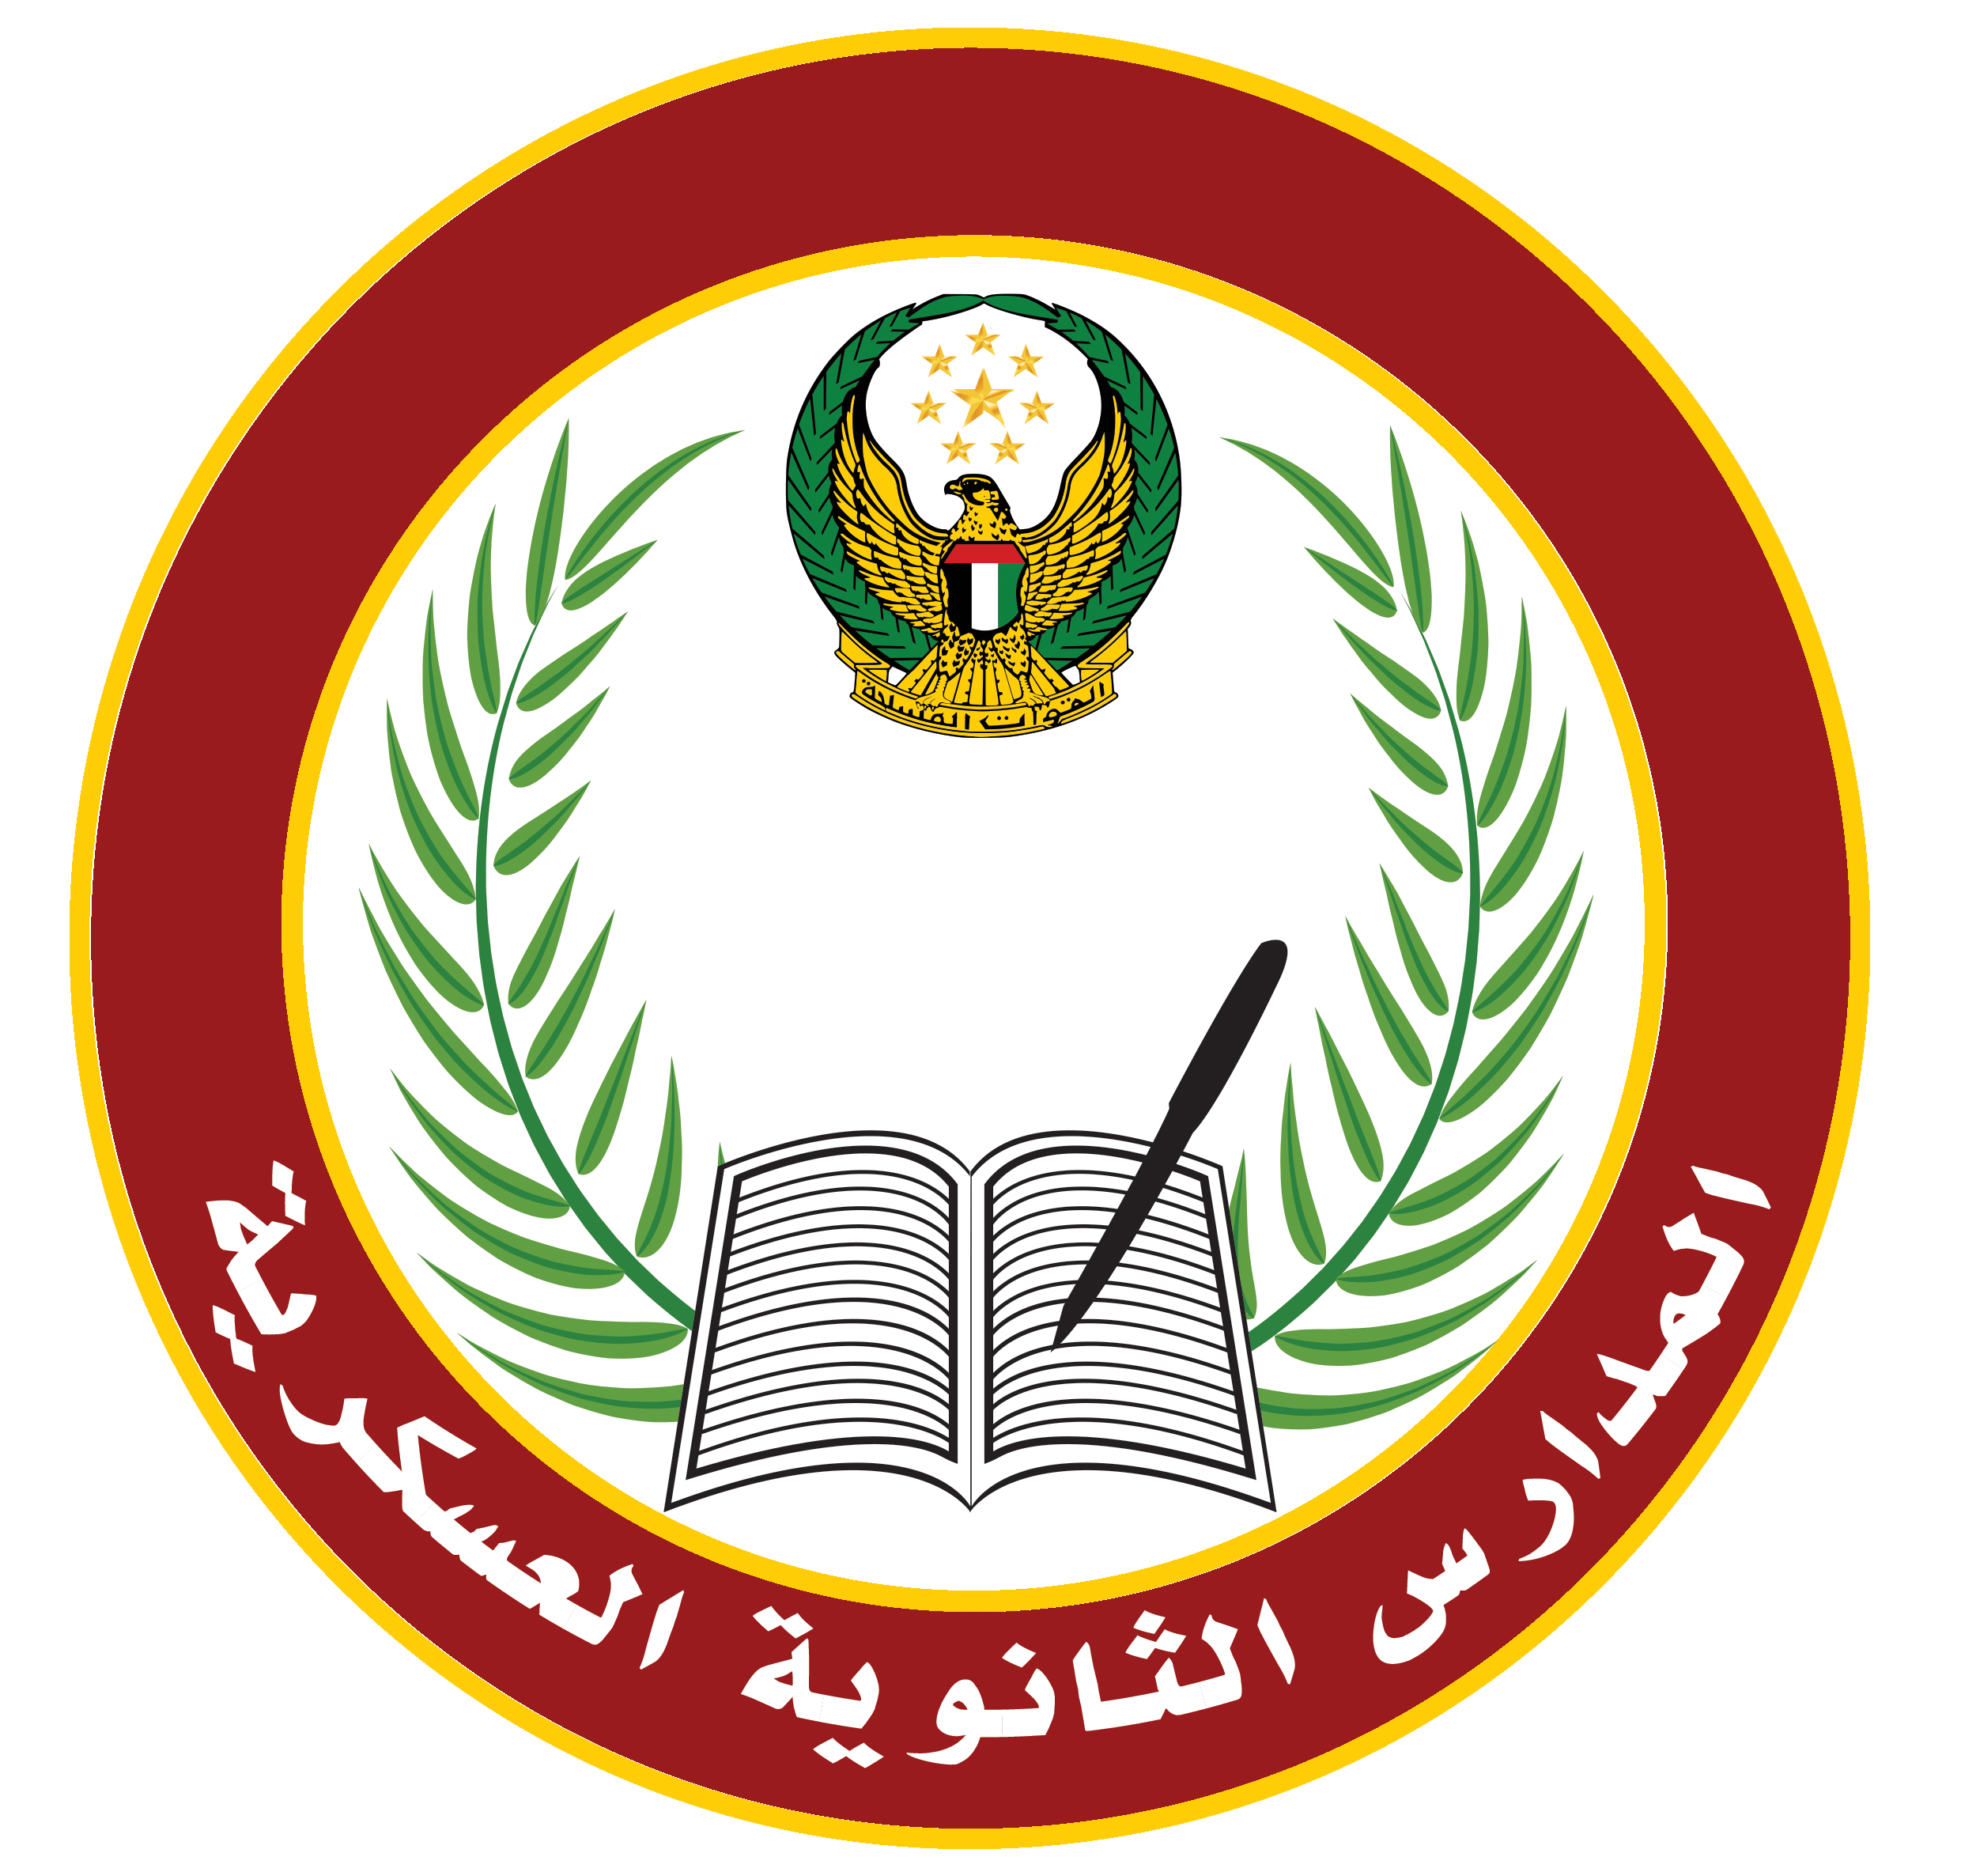 Military hight school Logo